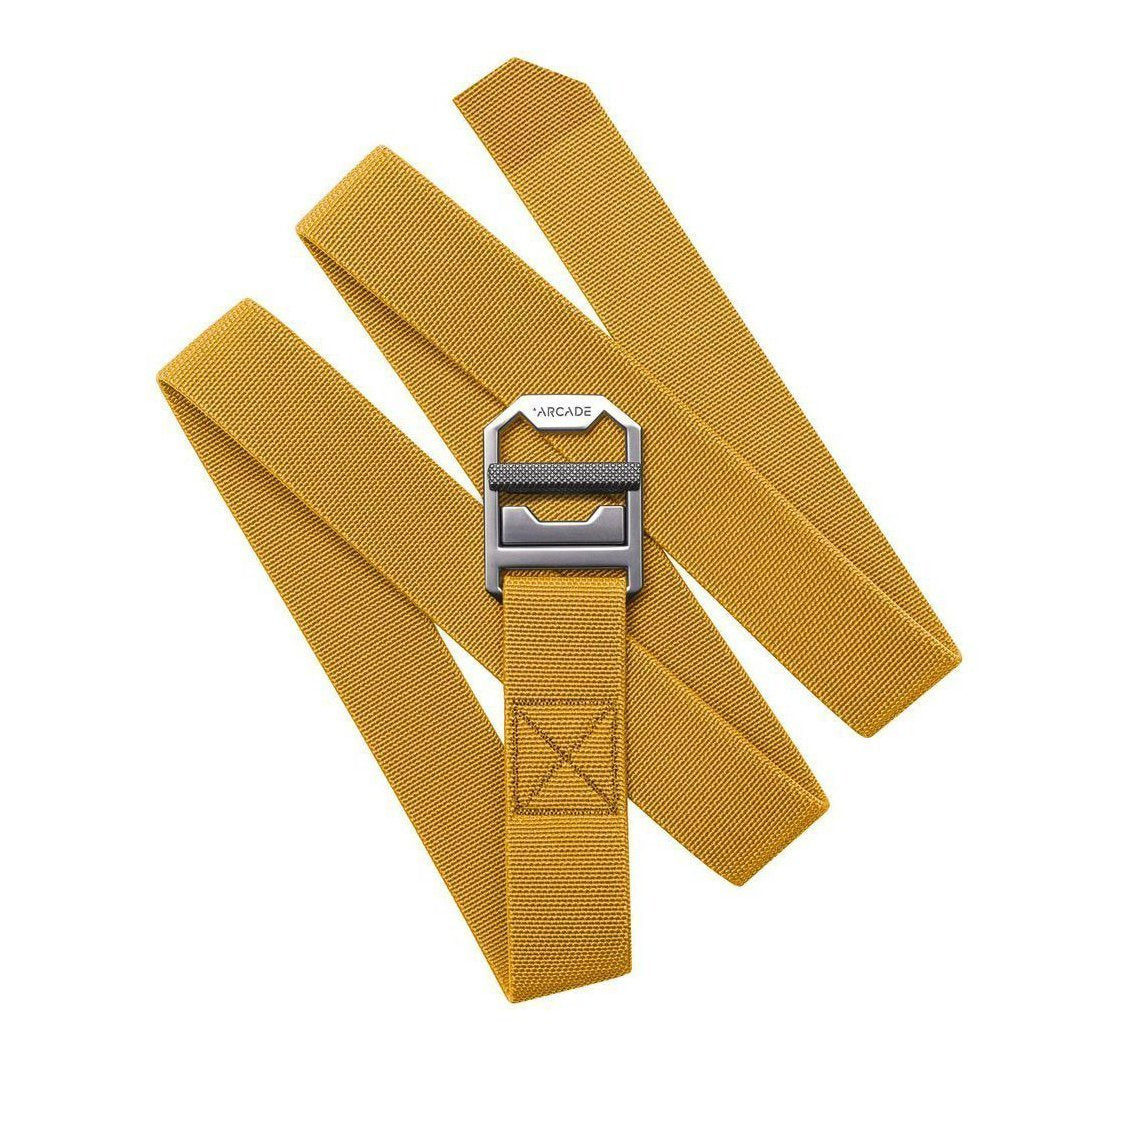 Arcade Belts | Guide Slim Utility Belt | Adventure Belt | Golden Rod